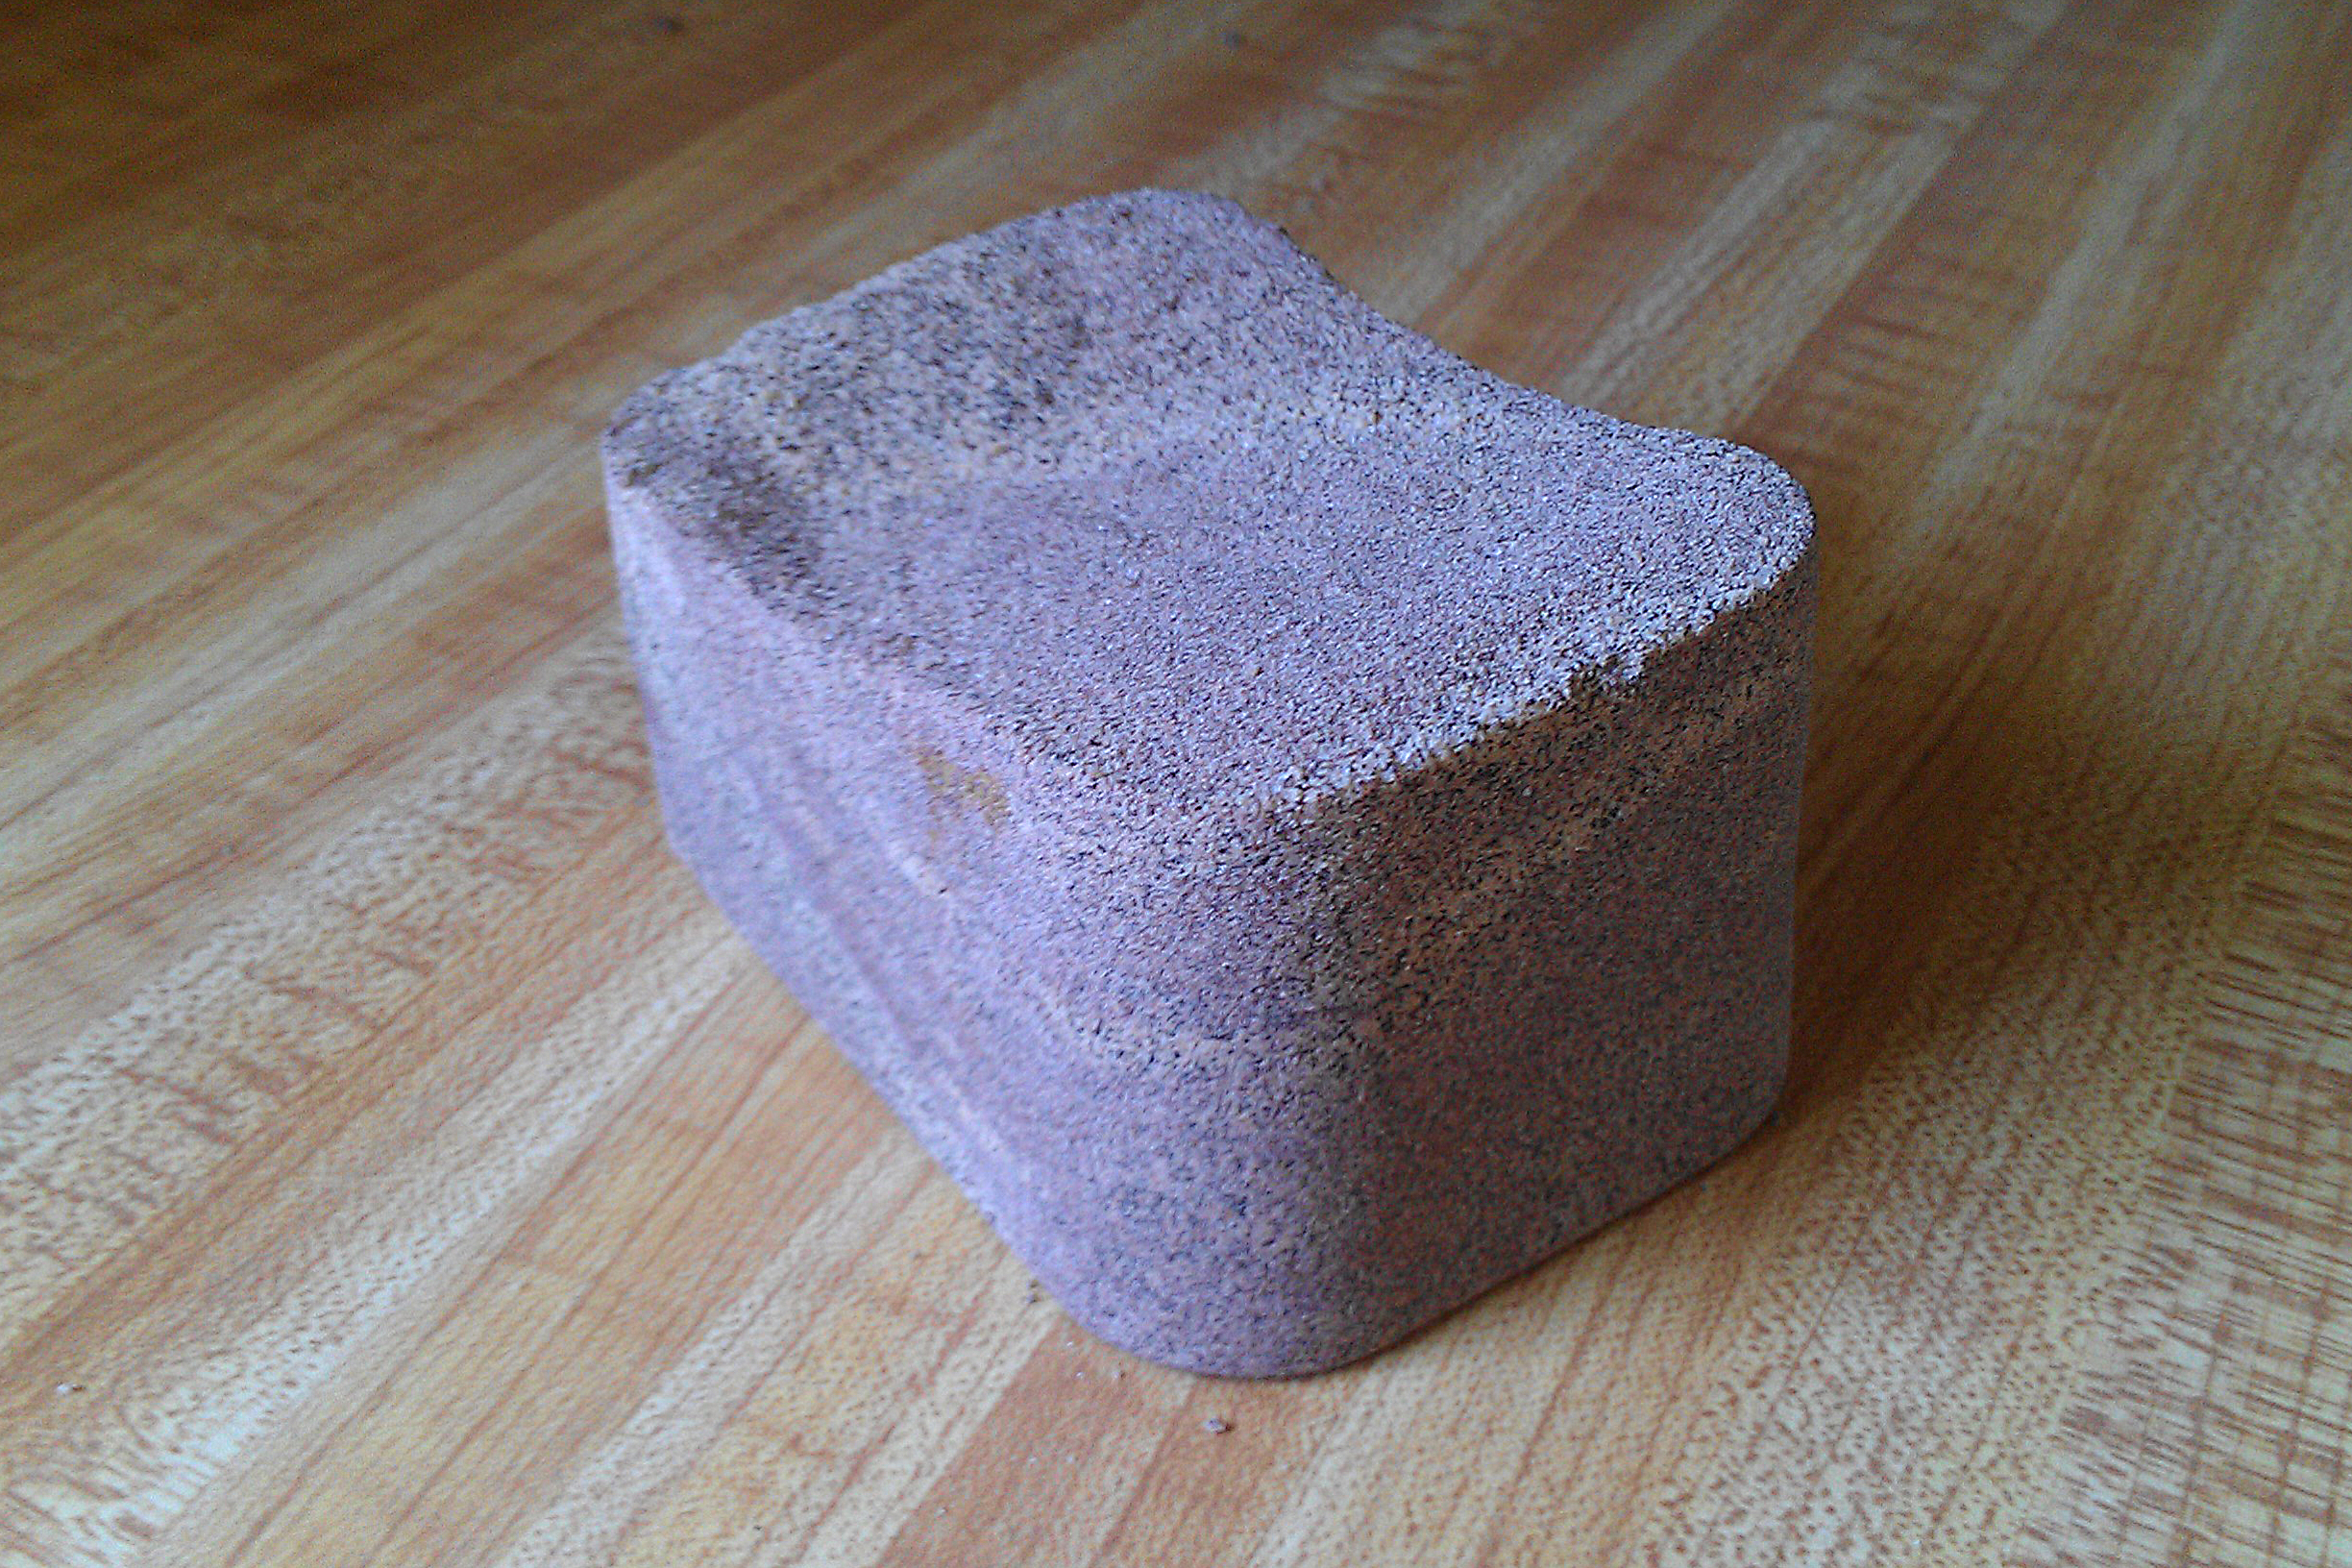 A block of California Rock Coffee, one of the most unusual coffees known to man.